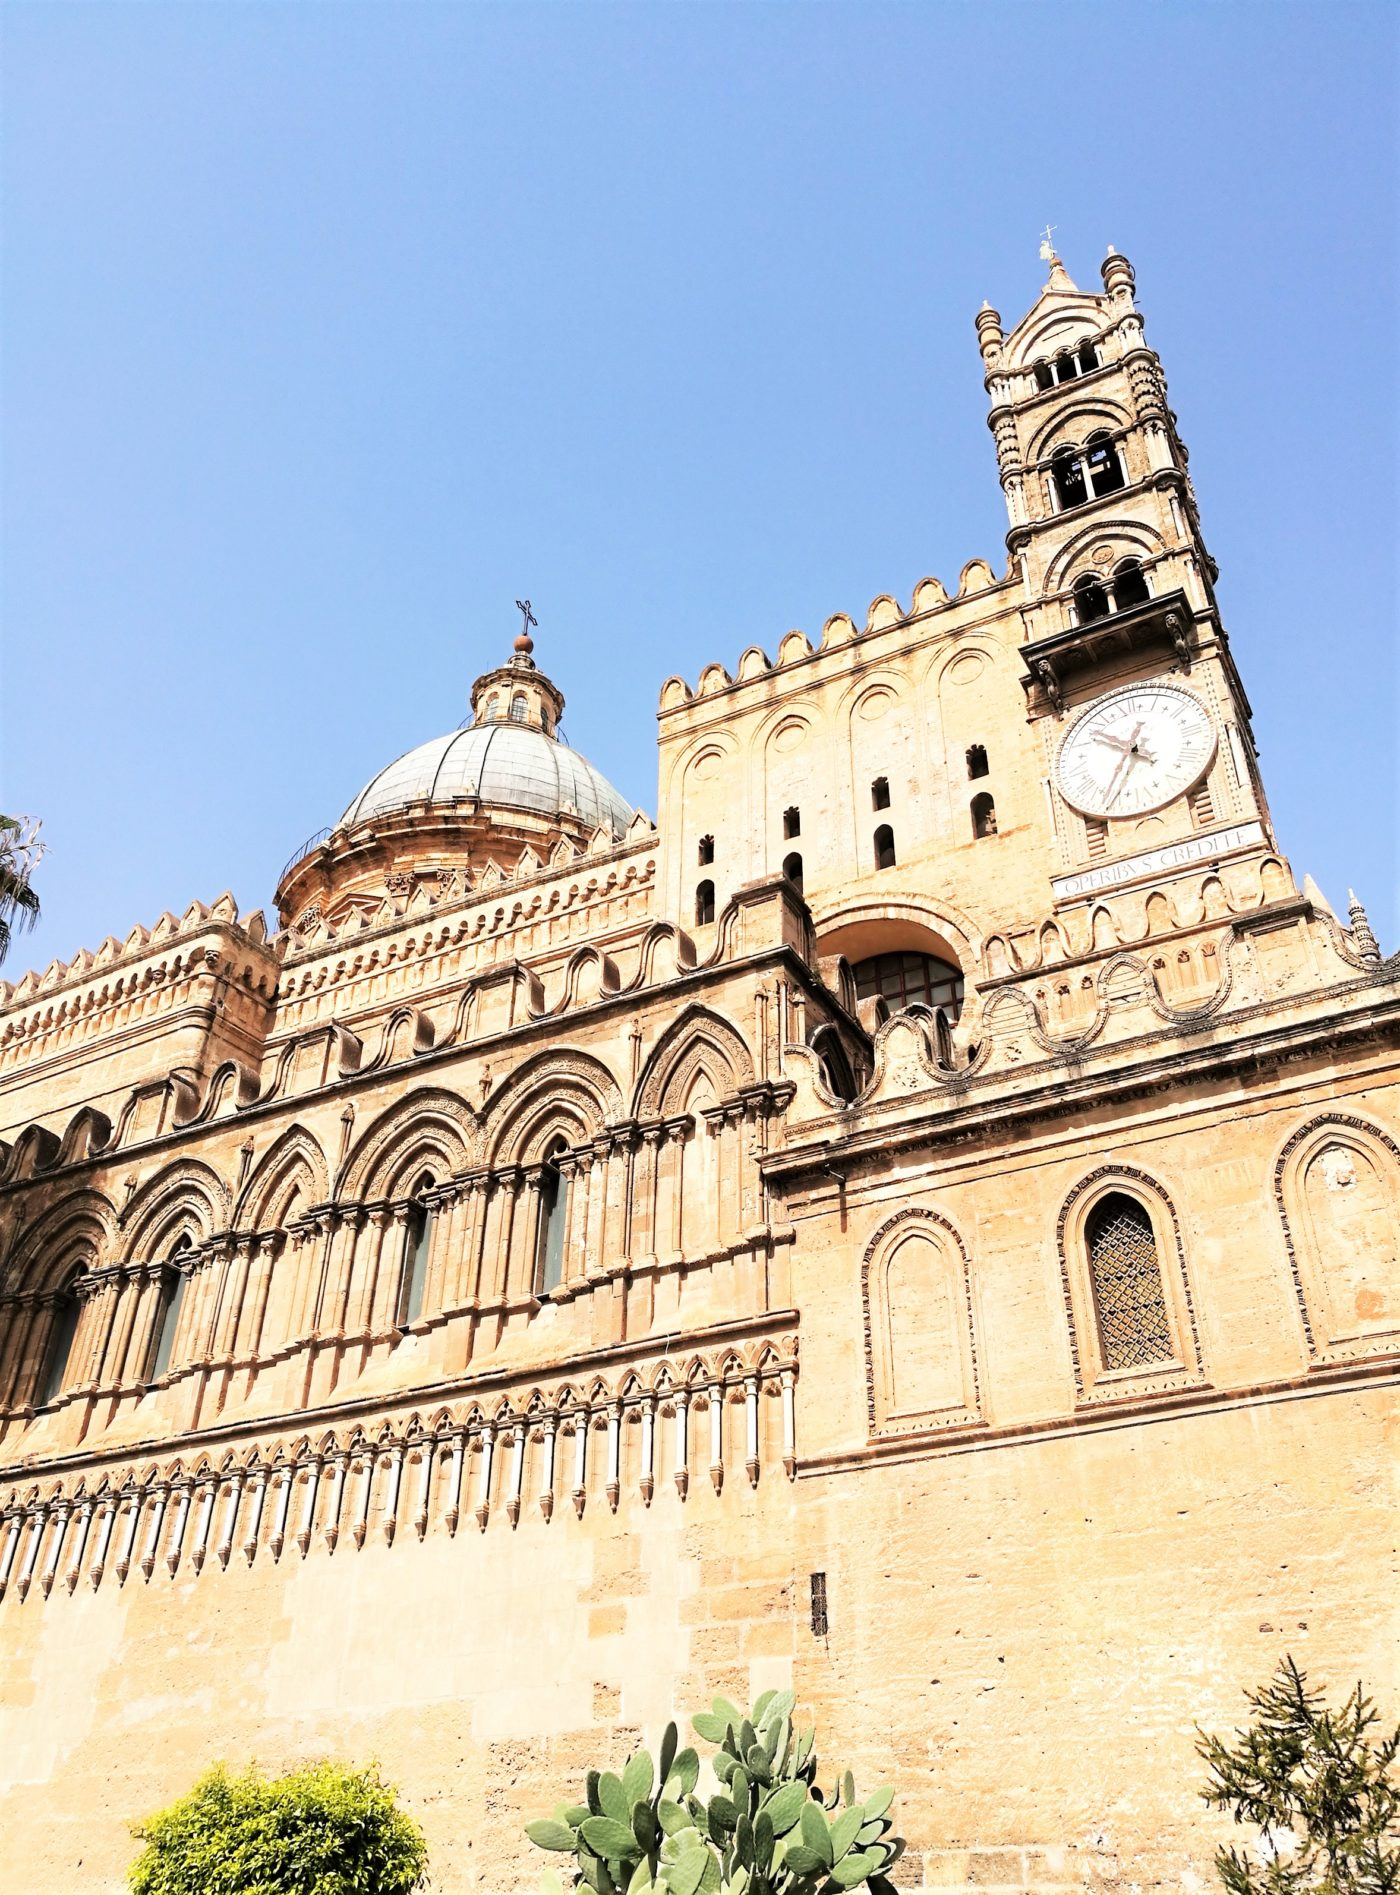 Palermo Walking Tour – The Sovereign and the People